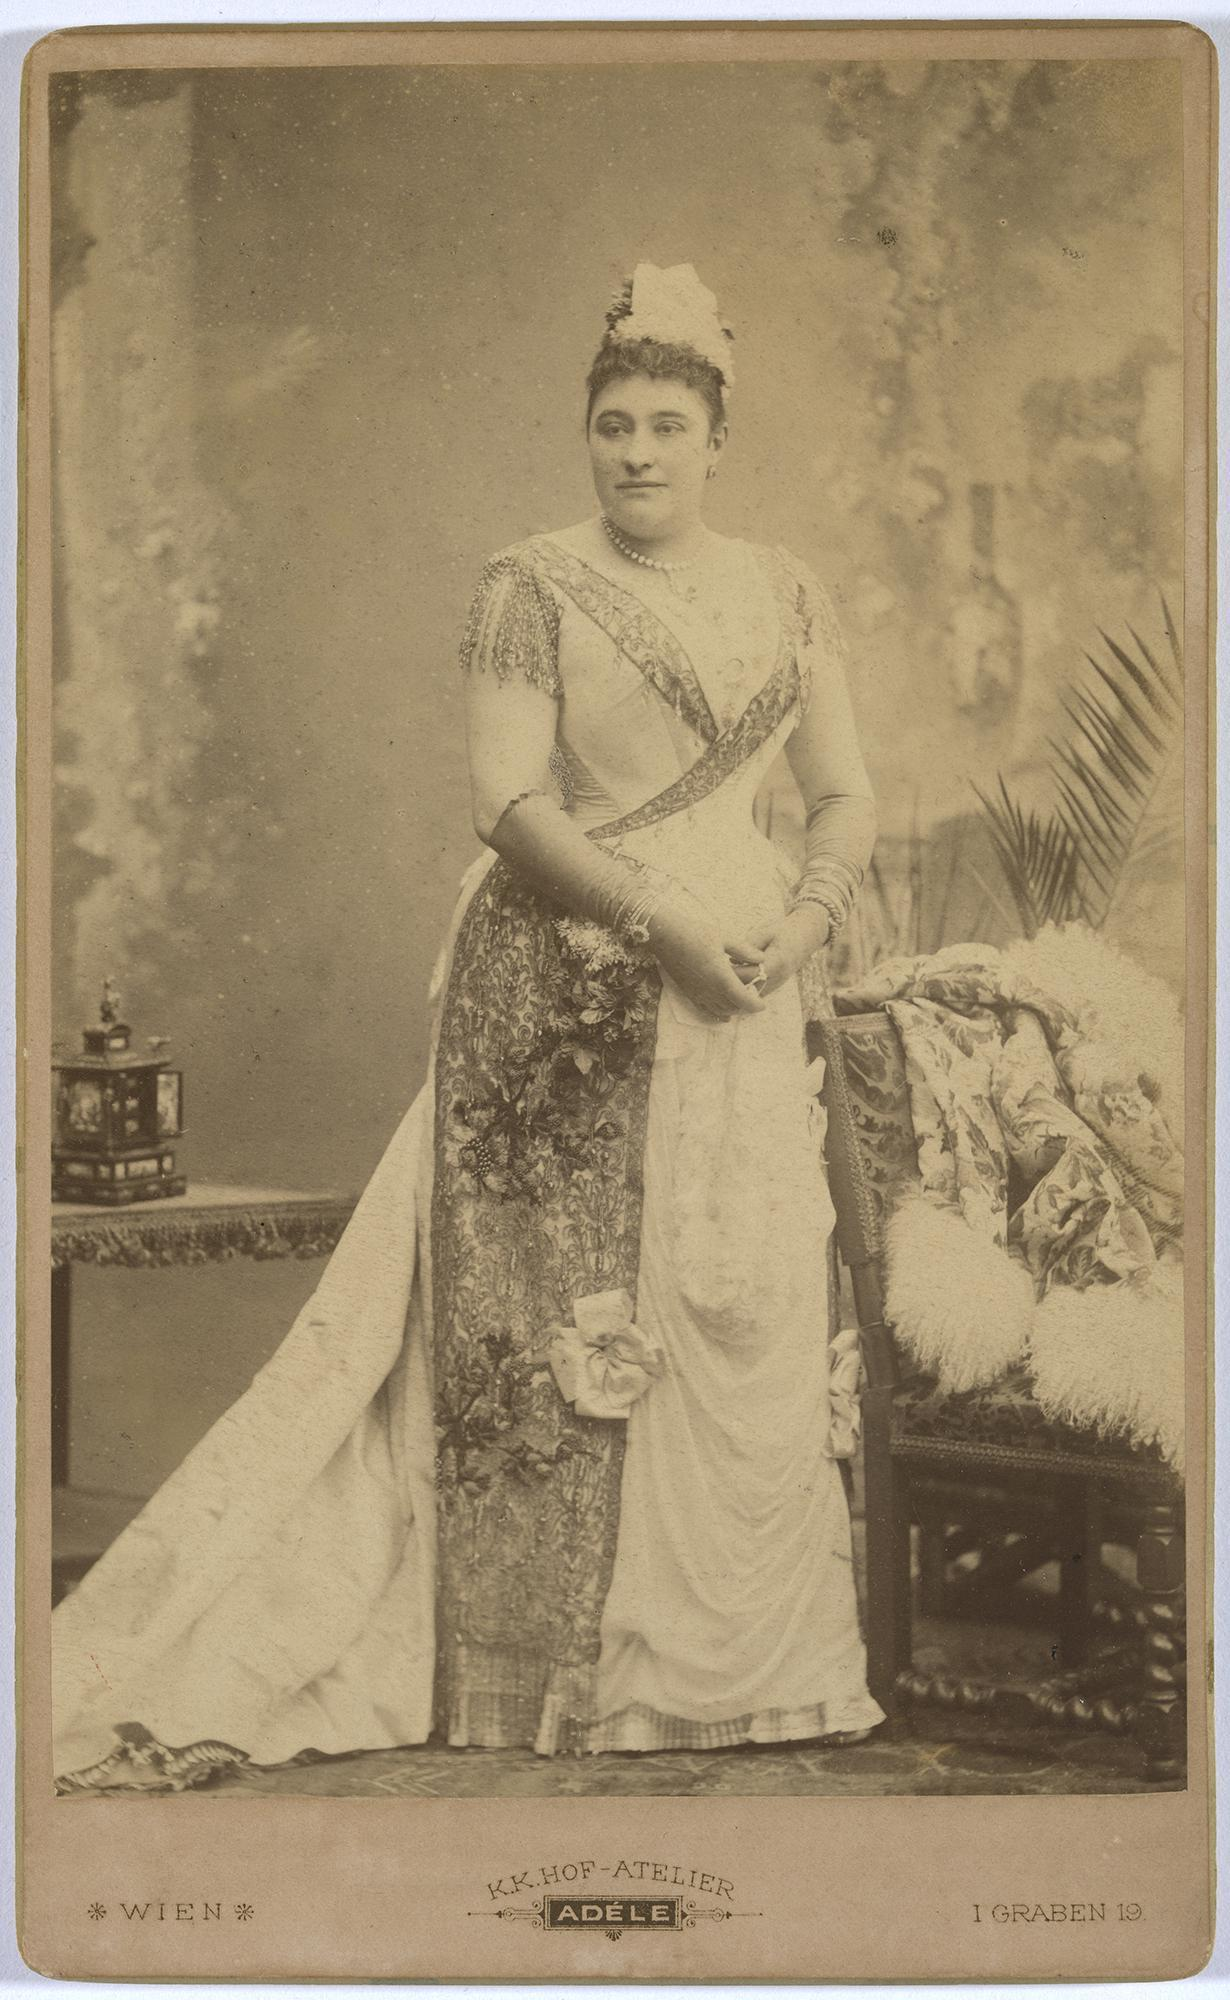 A regal woman in a dress posing for a photo.